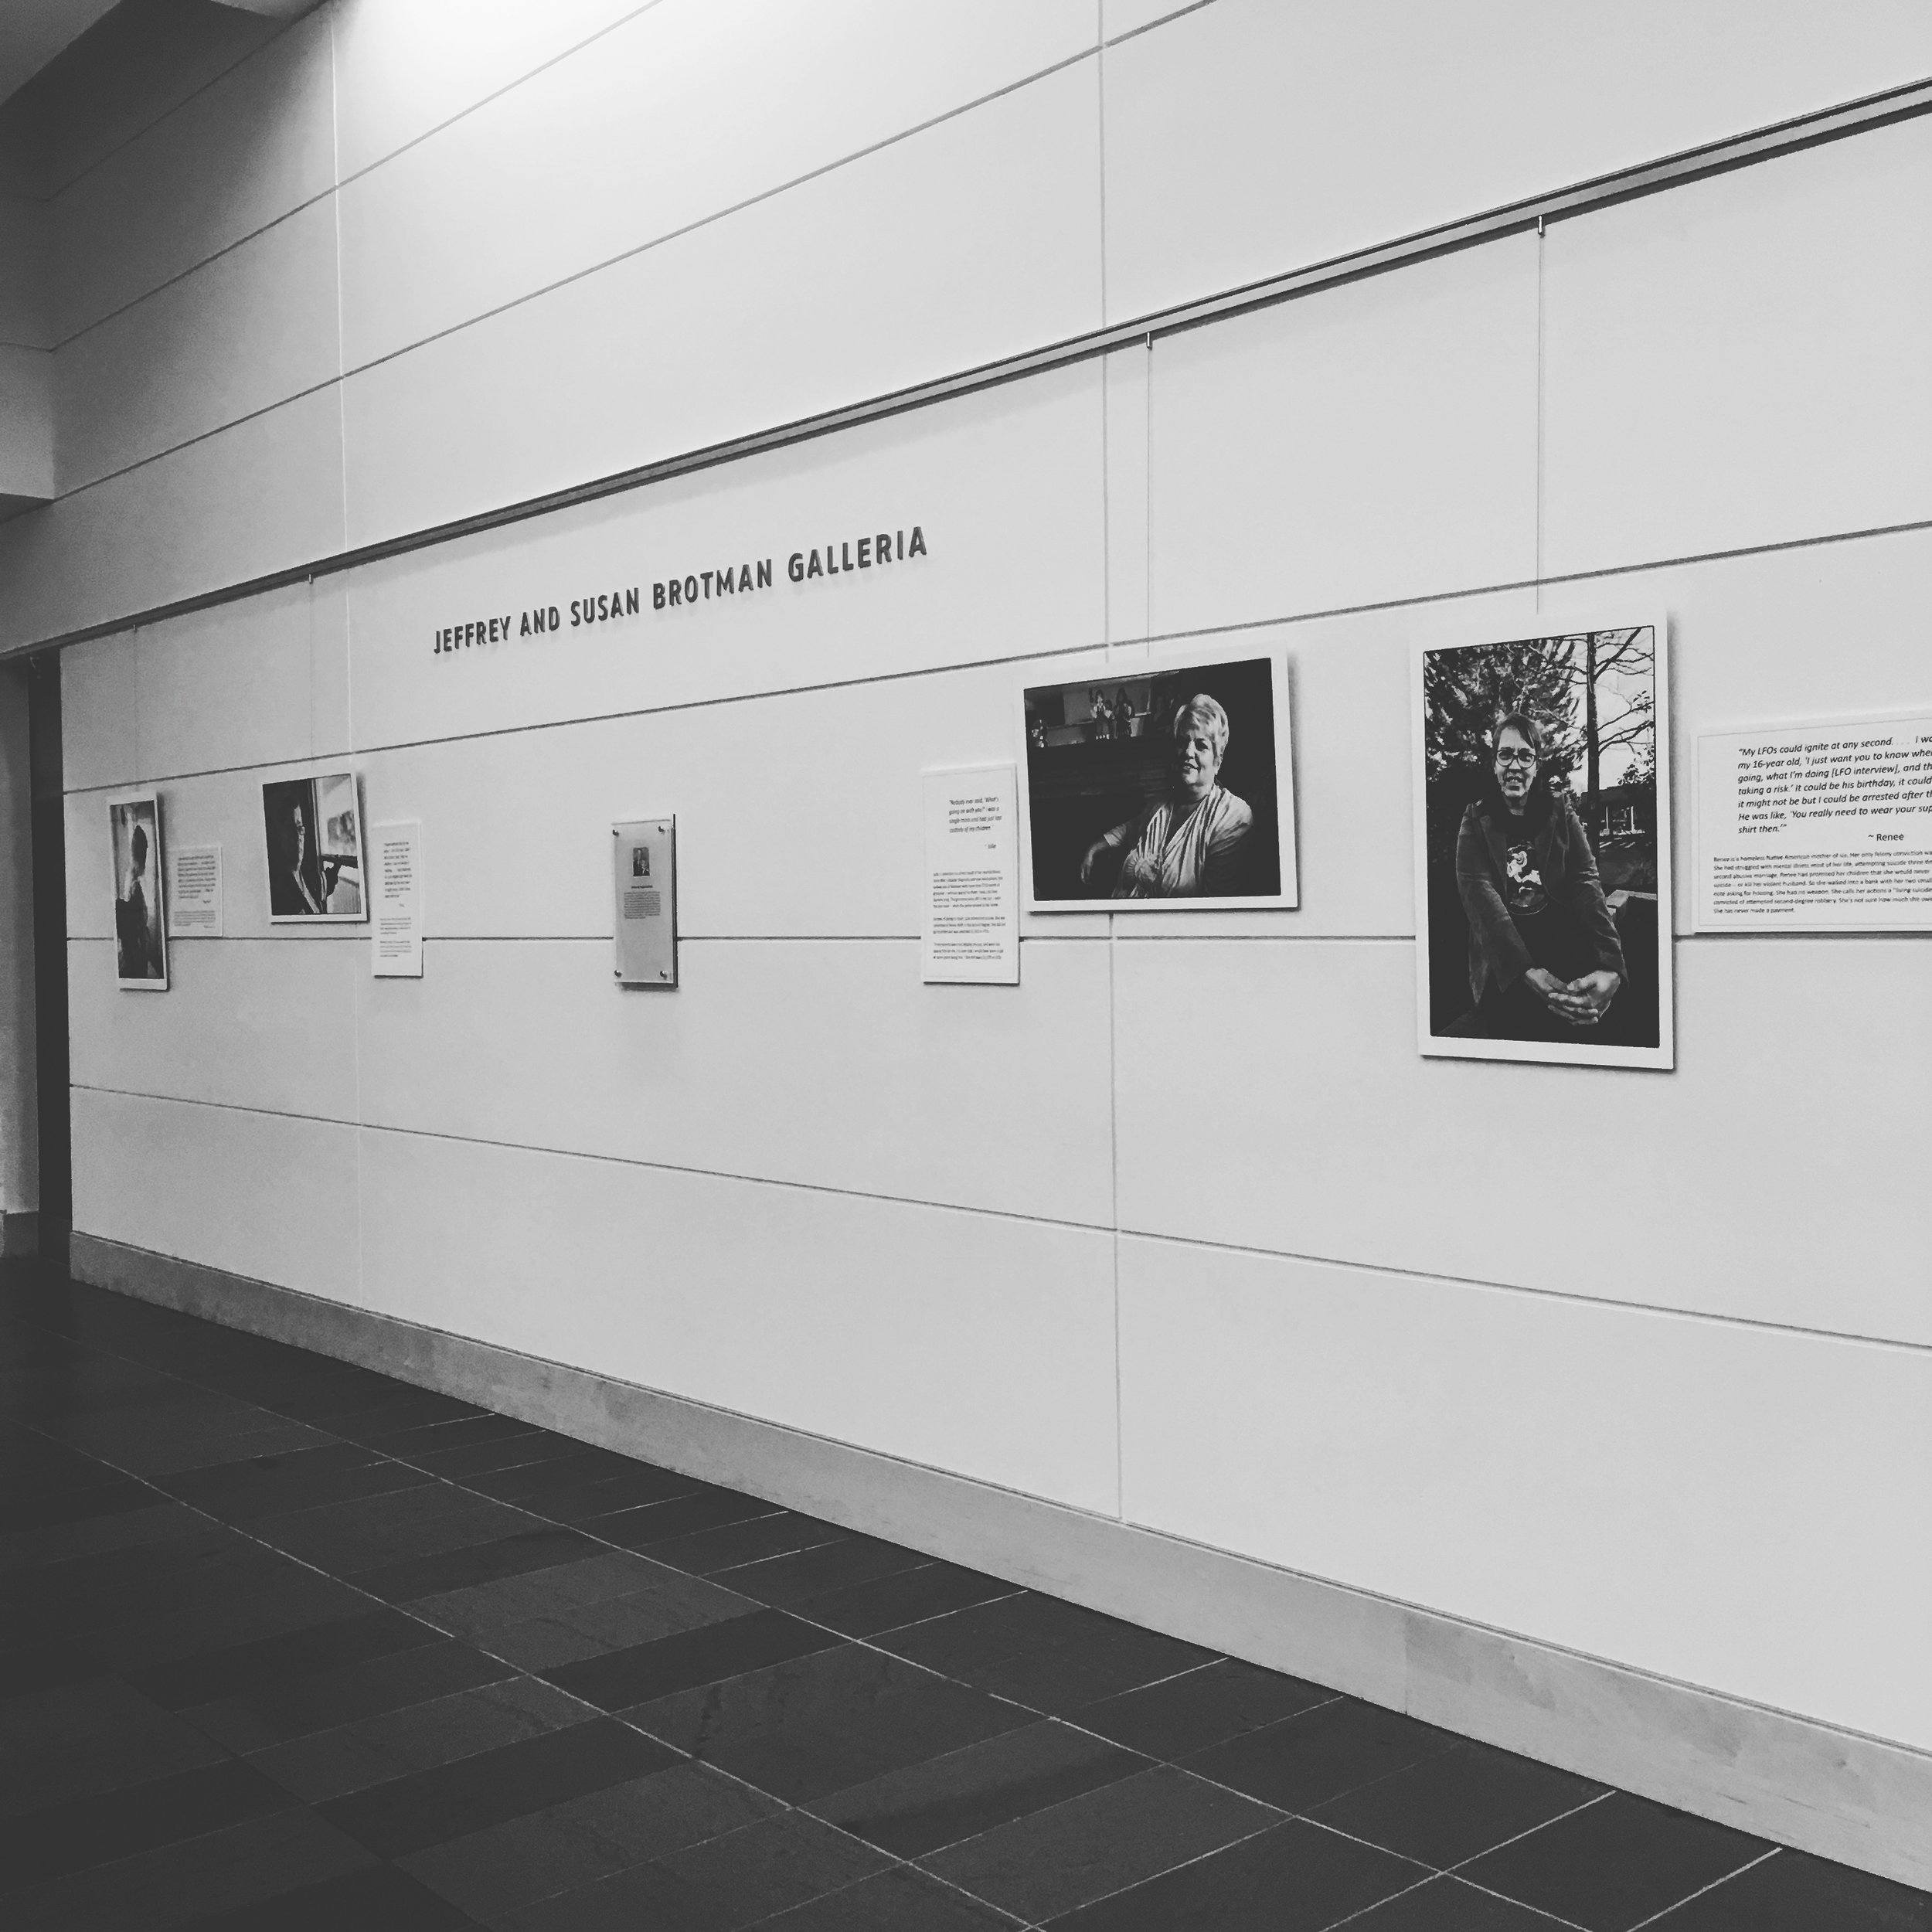 Our three-month exhibit at the Brotman Galeria at the University of Washington School of Law.